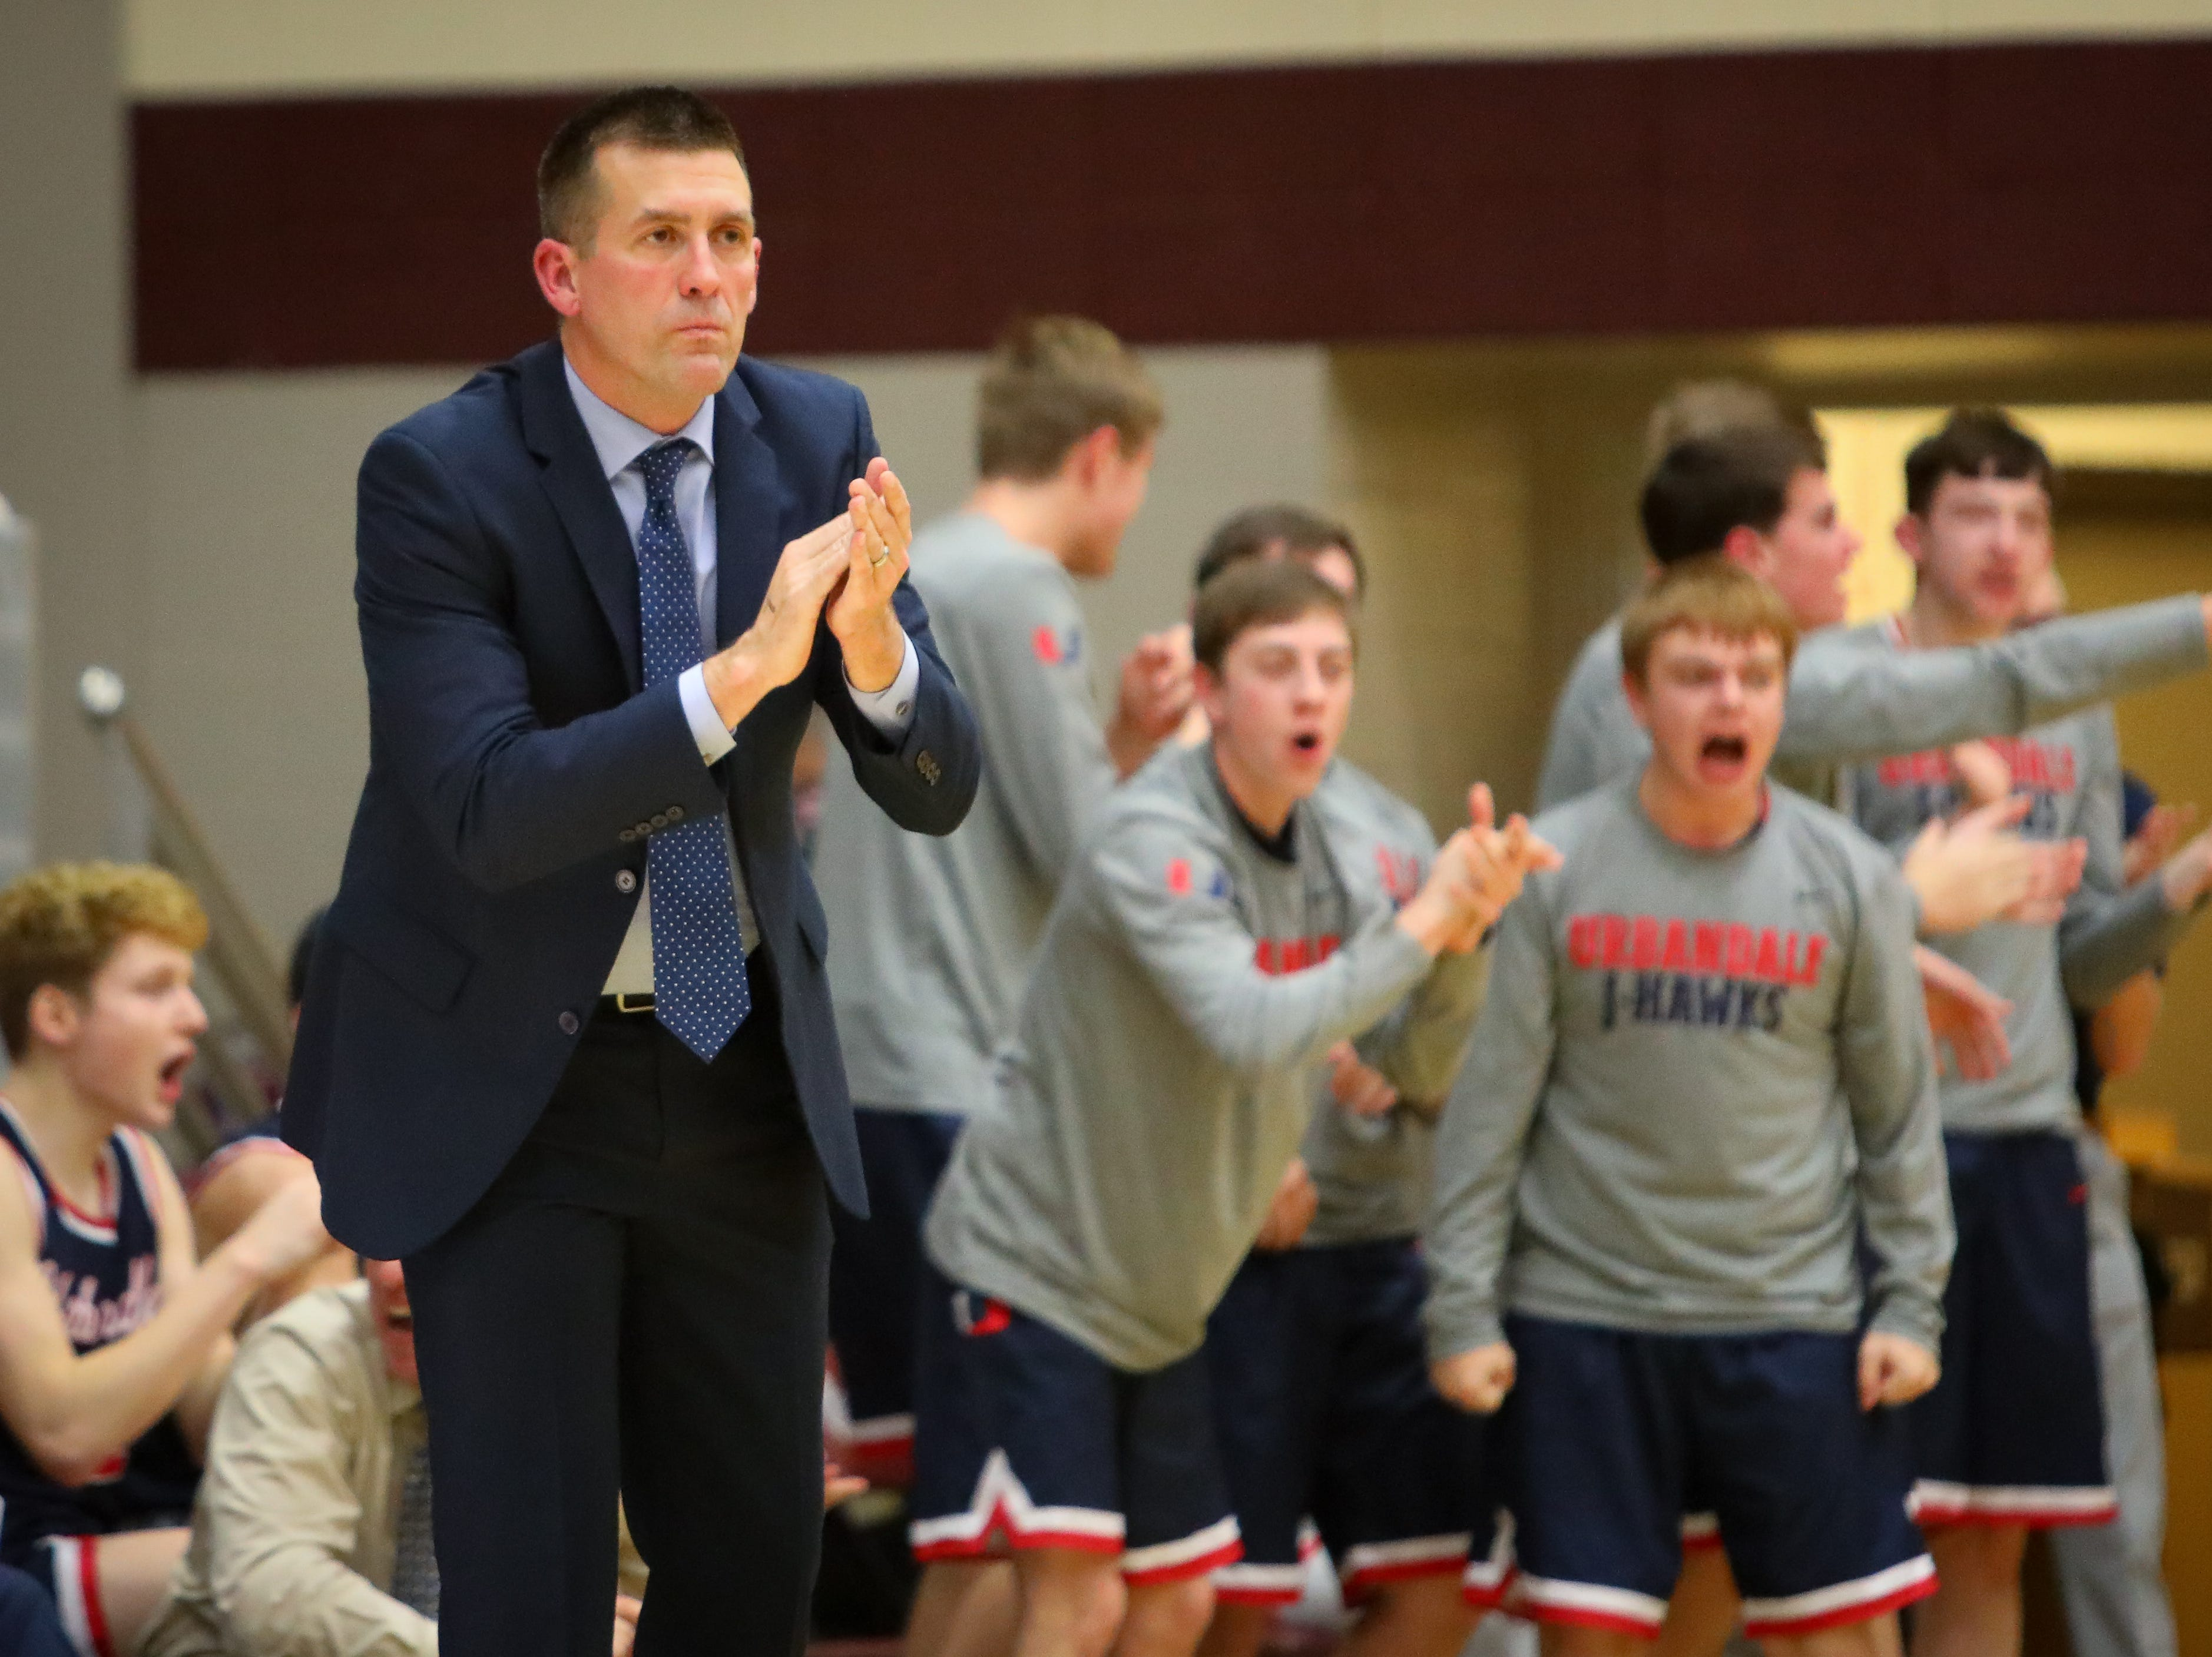 Urbandale head coach Jon Schmitz celebrates after a play during a boys high school basketball game between the Urbandale J-Hawks and the Dowling Catholic Maroons at Dowling Catholic High School on Jan. 11, 2019 in West Des Moines, Iowa.